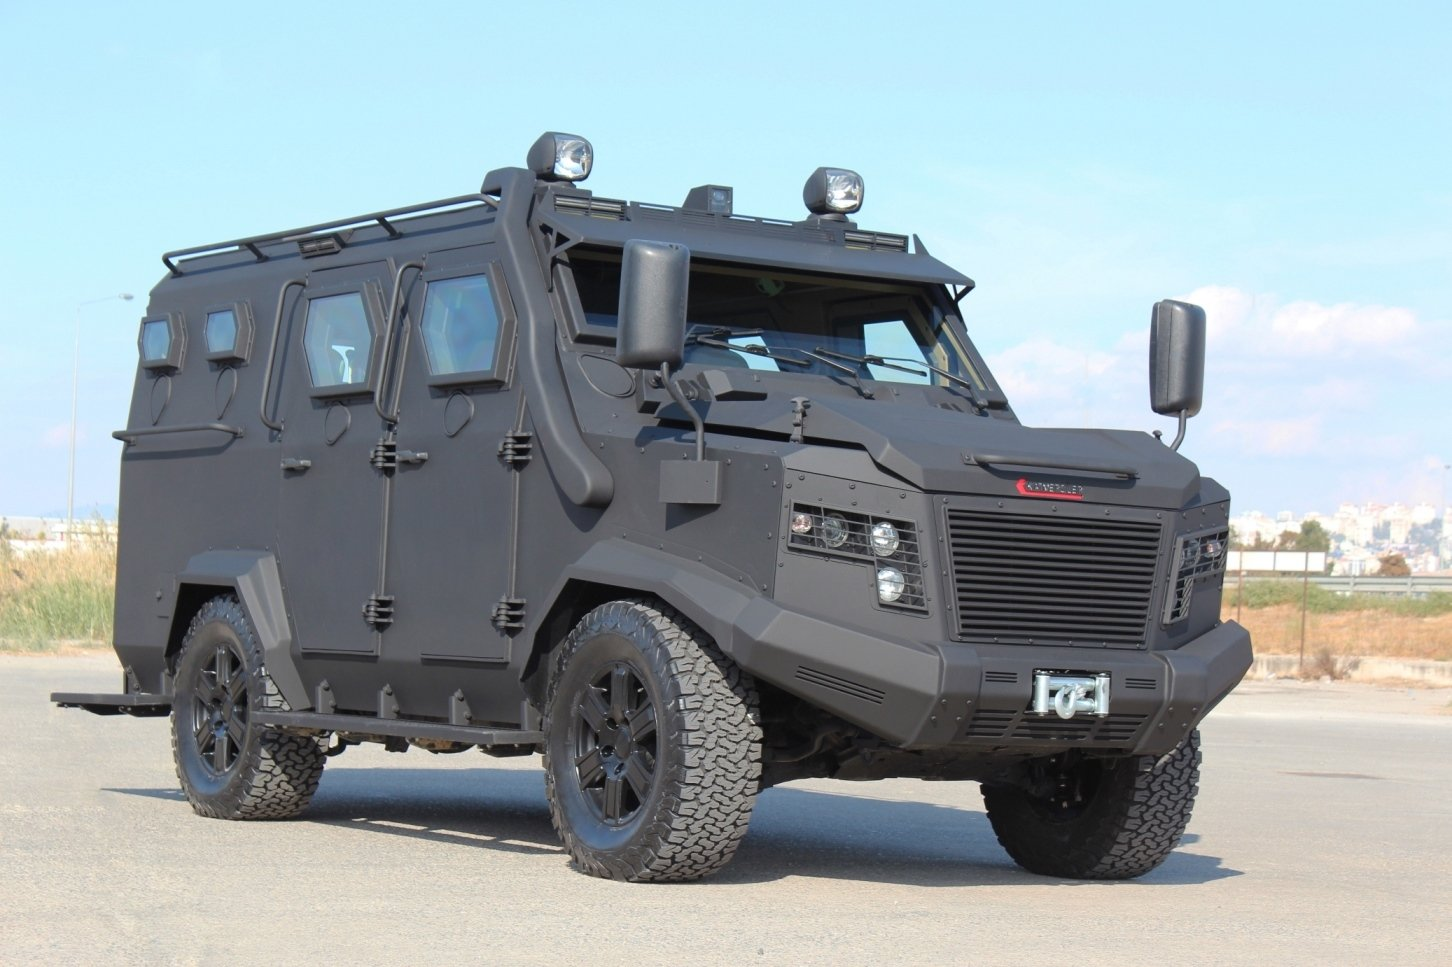 Katmerciler's new armored personnel carrier Khan is seen in this photo provided on Feb. 1, 2021. (Courtesy of Katmerciler)